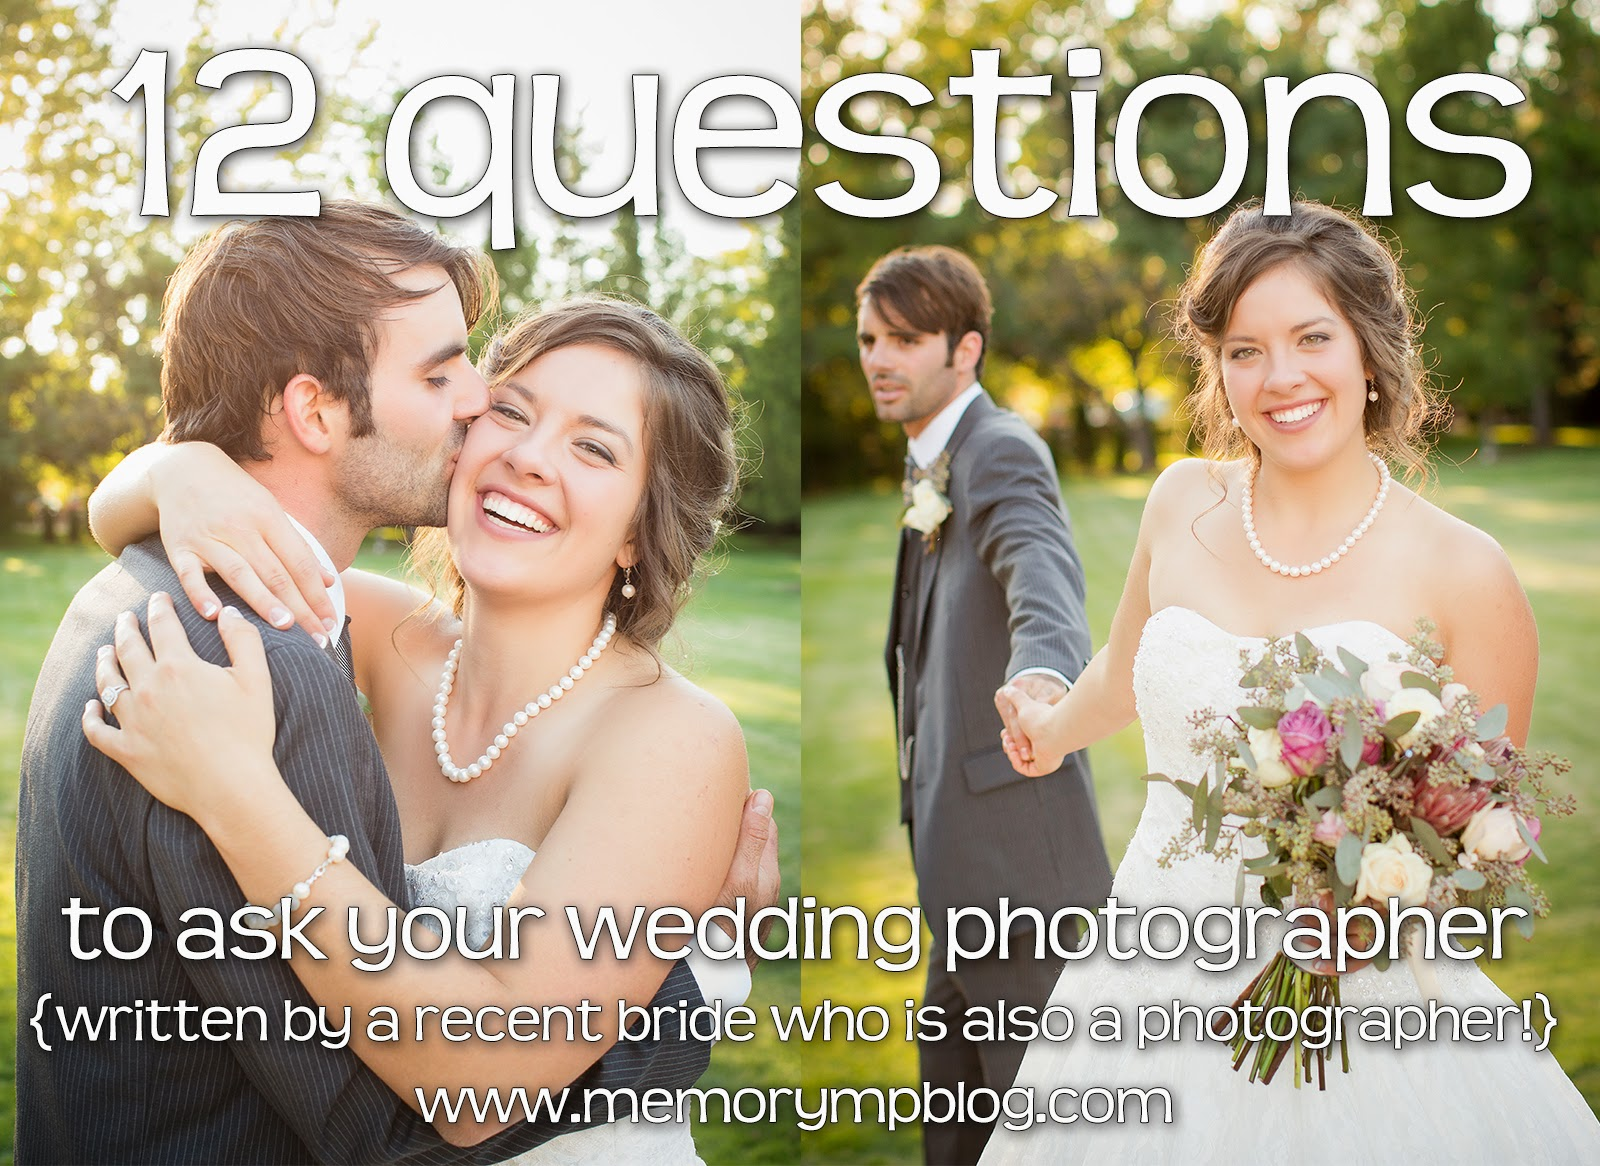 Memory montage photography blog 12 questions to ask your wedding 12 questions to ask your wedding photographer junglespirit Gallery